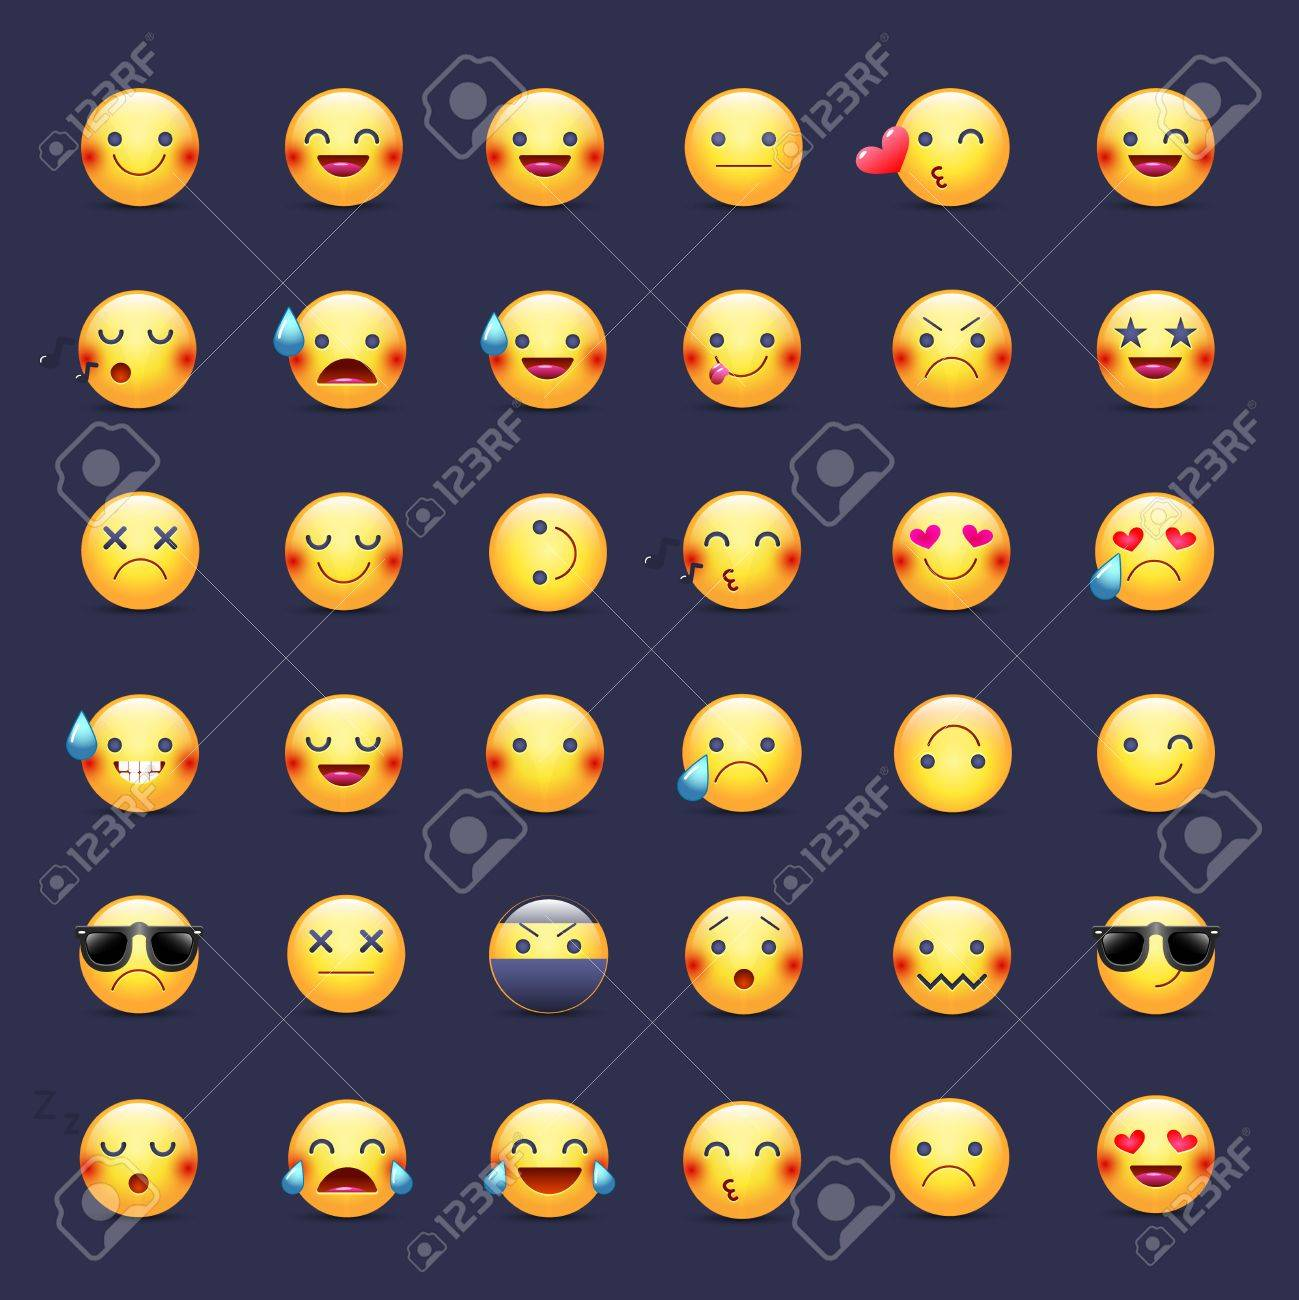 Smileys vector icon set. Emoticons pictograms. Happy, merry, singing, sleeping, ninja, crying, in love and other round yellow smileys. Large collection of smiles - 87214556